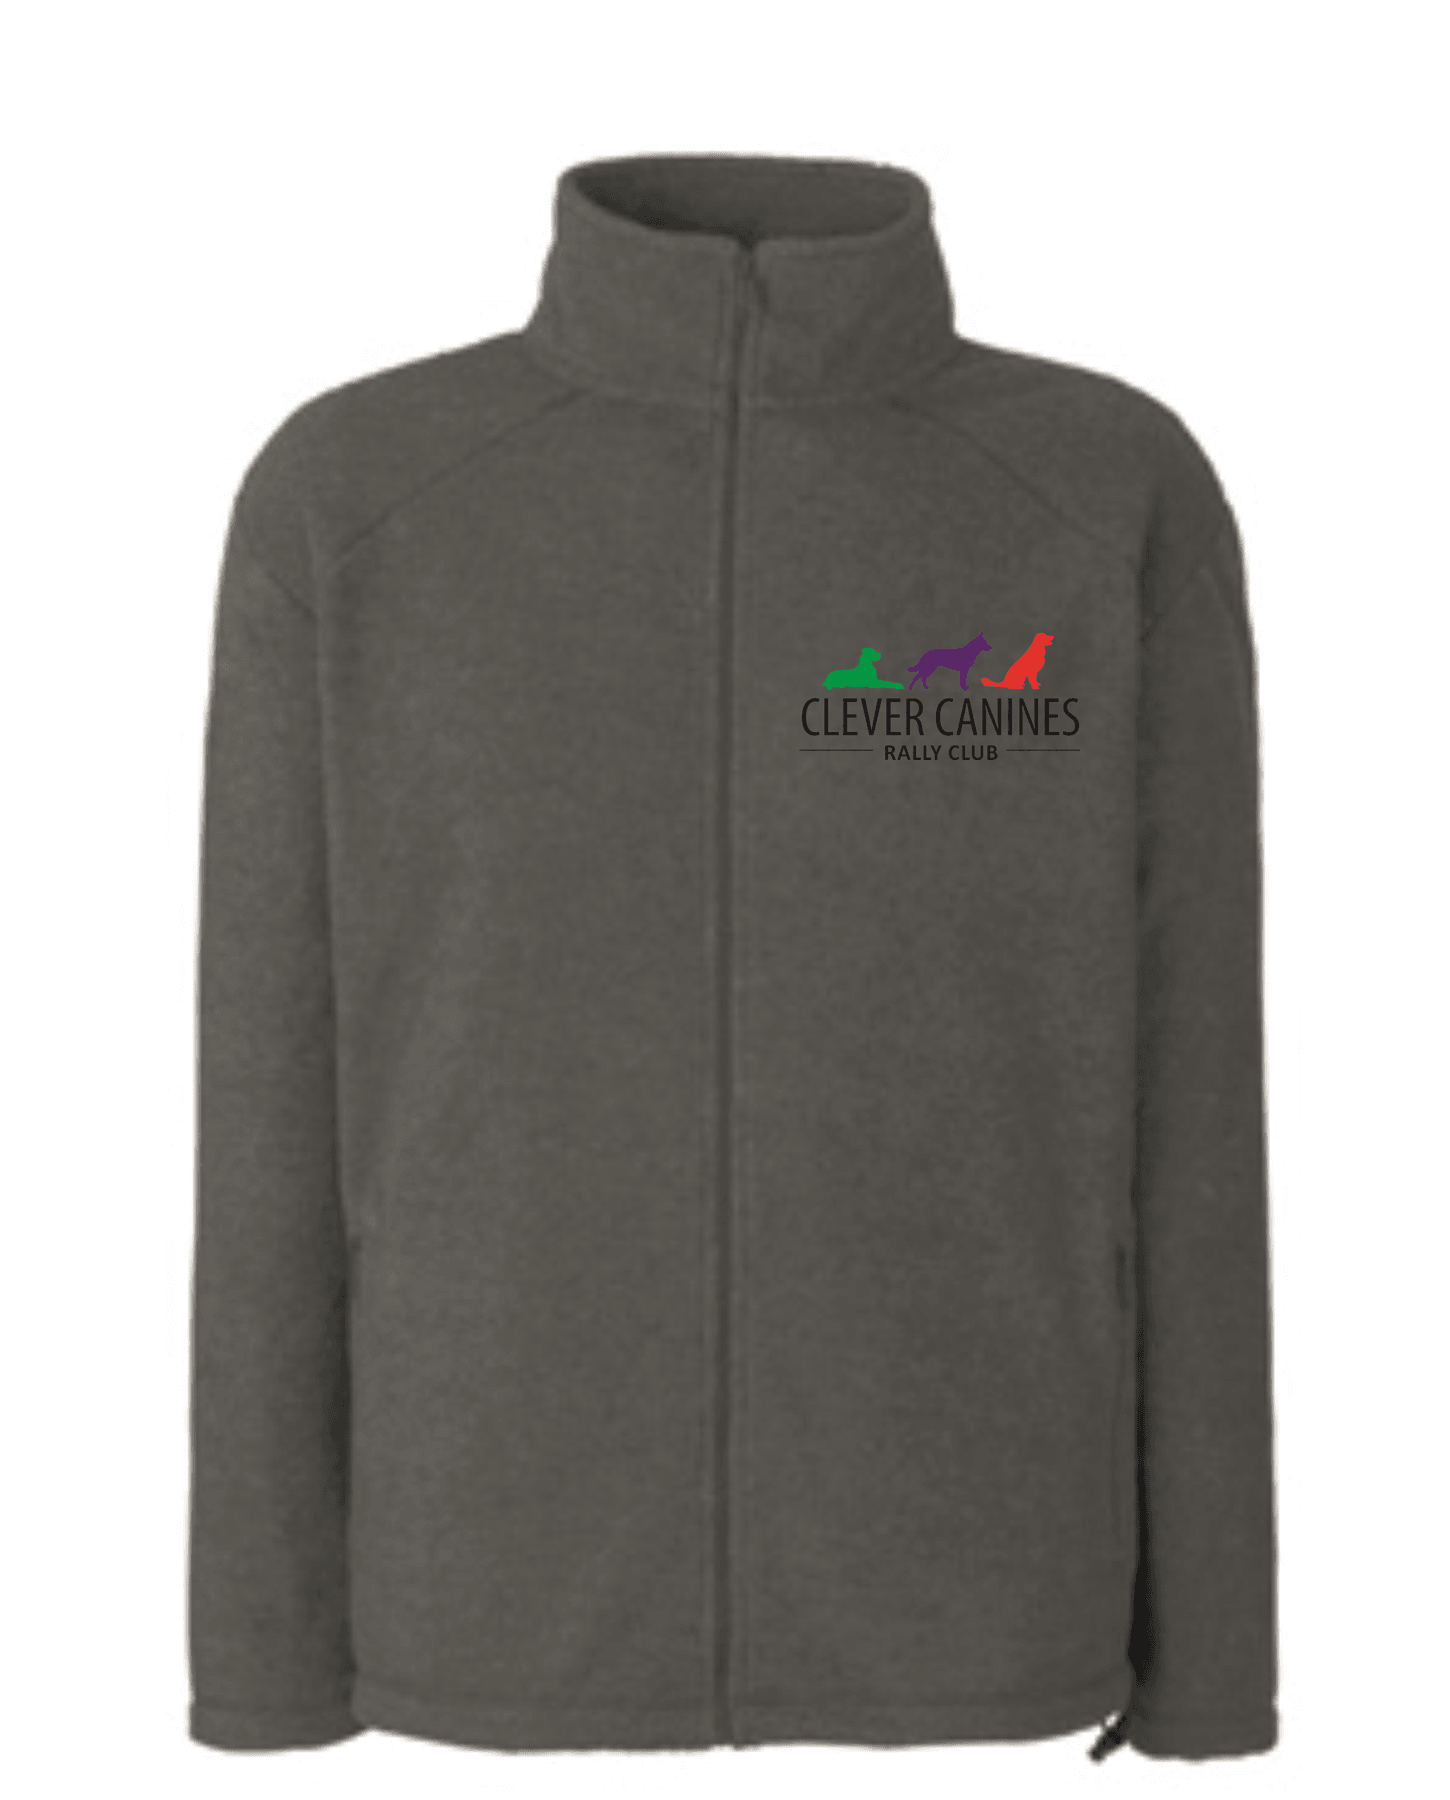 Clever Canines Rally Club Unisex Fleece